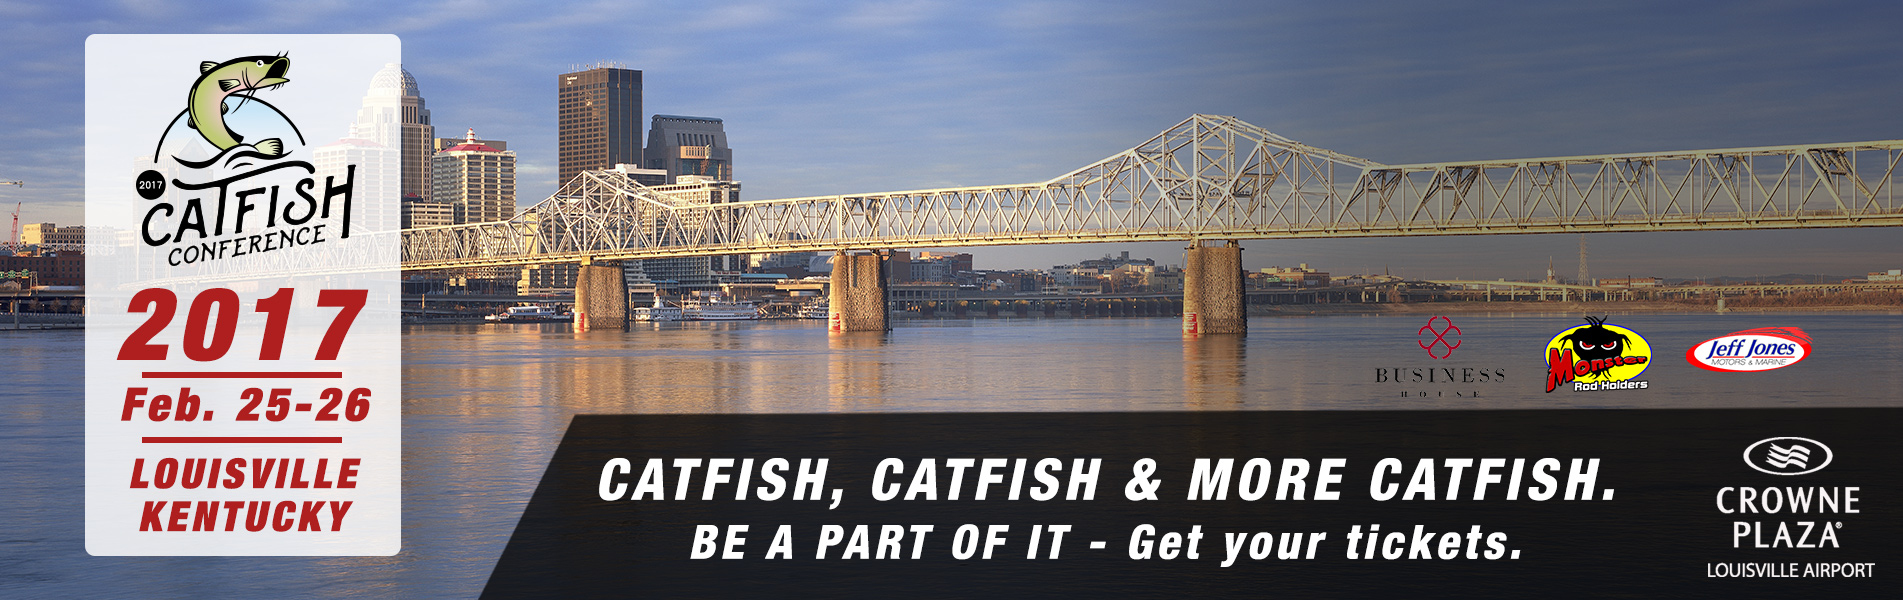 CATC Slider 2017 catfish conference 2017 Catfish Conference 2017 – Save the Date CATC Slider 2017